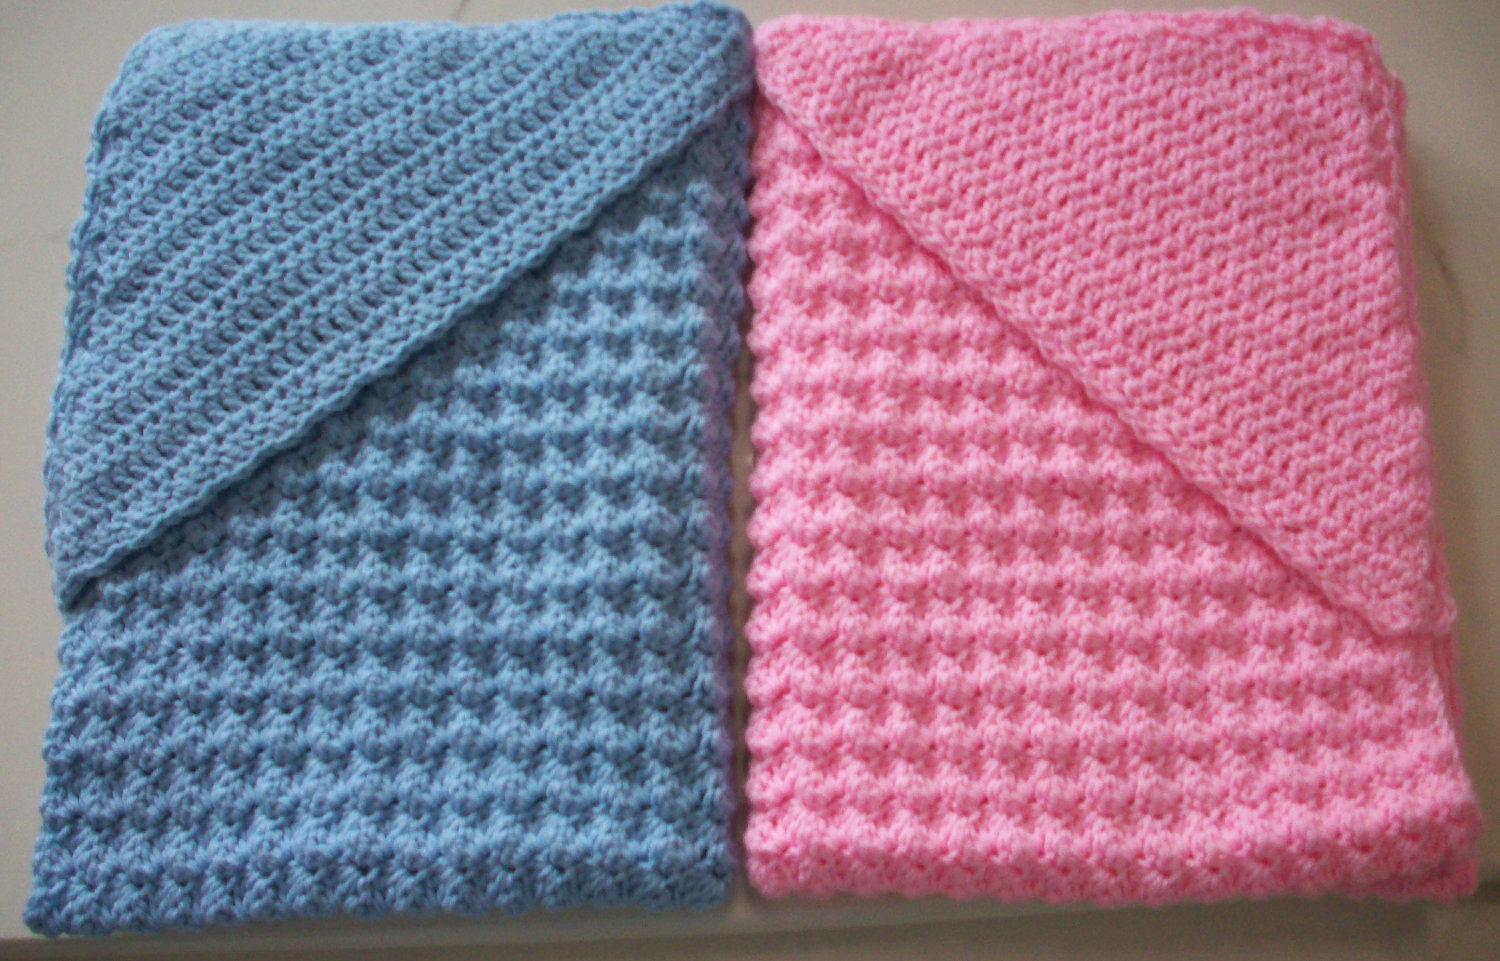 Soft Yarn for Baby Blanket Best Of Hooded Baby Blankets soft Acrylic Yarn by Of Gorgeous 45 Pictures soft Yarn for Baby Blanket